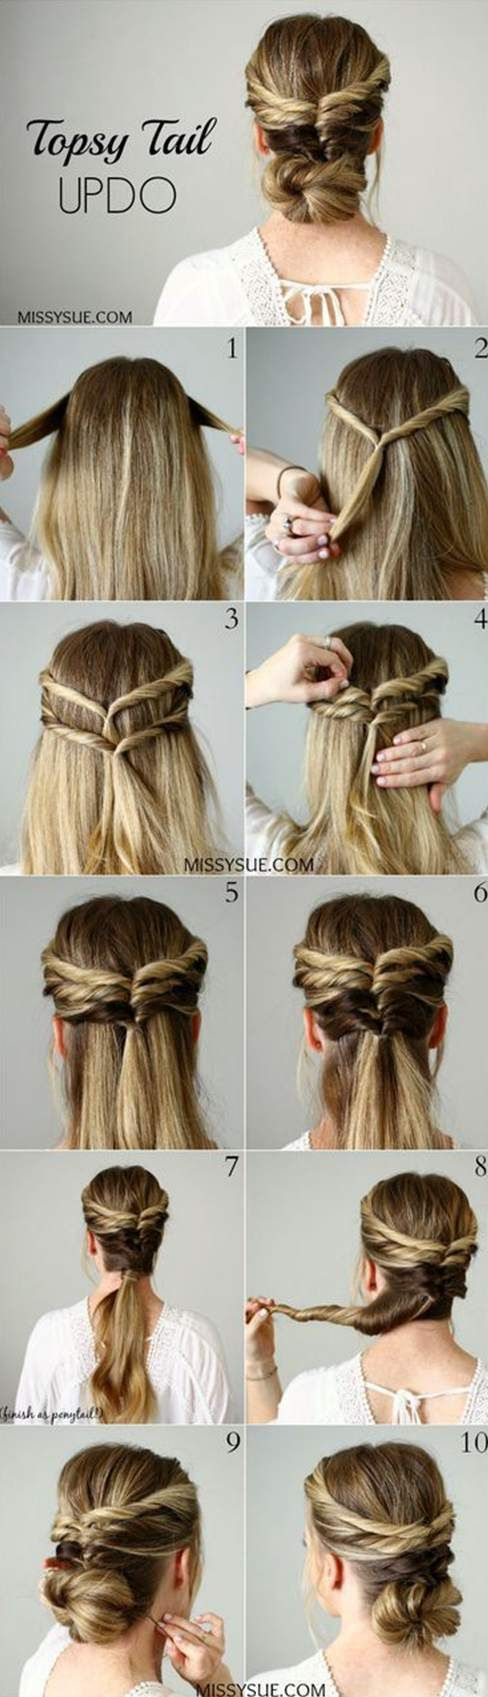 5 Minute Hairstyles For Long Straight Hair Hairstyles Hairstylesforlonghair Minute S 5 Minute Hairstyles Hair Tutorials For Medium Hair Medium Hair Styles